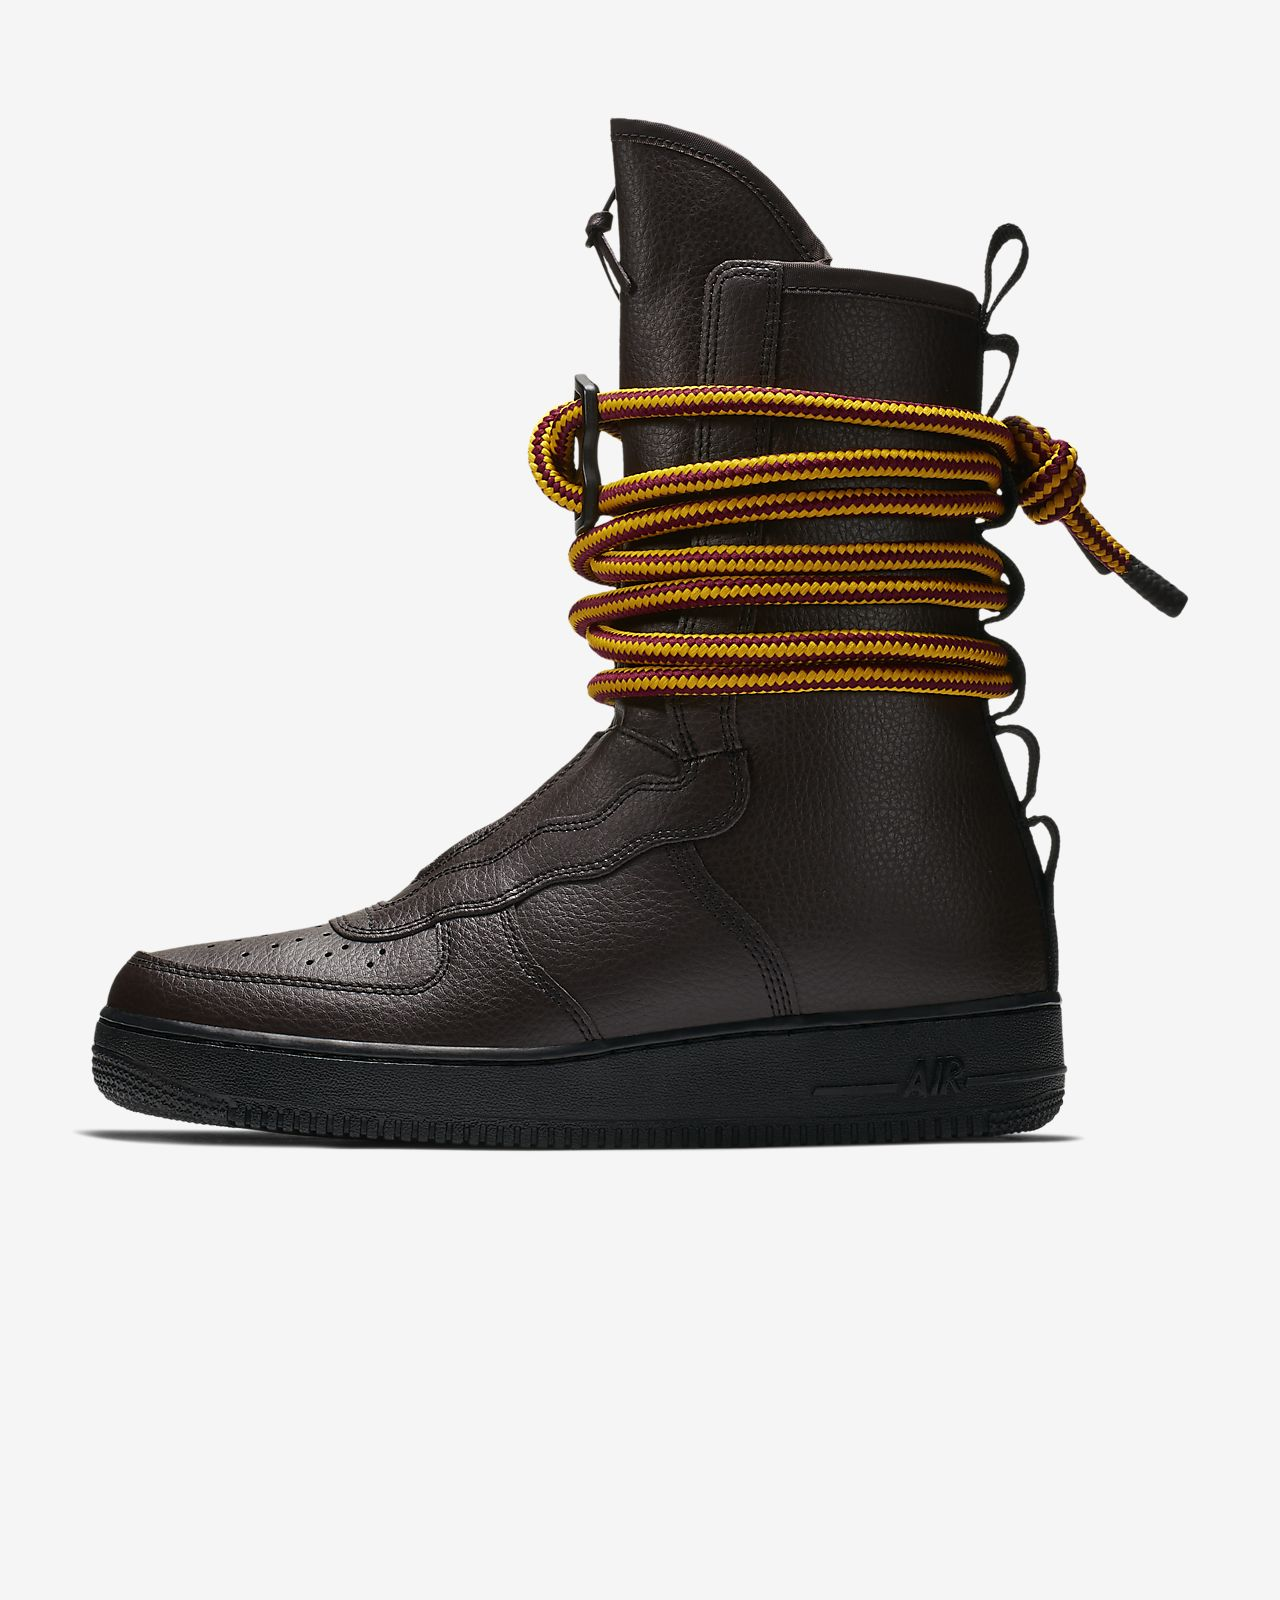 new concept c44d8 8c4d3 ... Nike SF Air Force 1 High Men s Boot